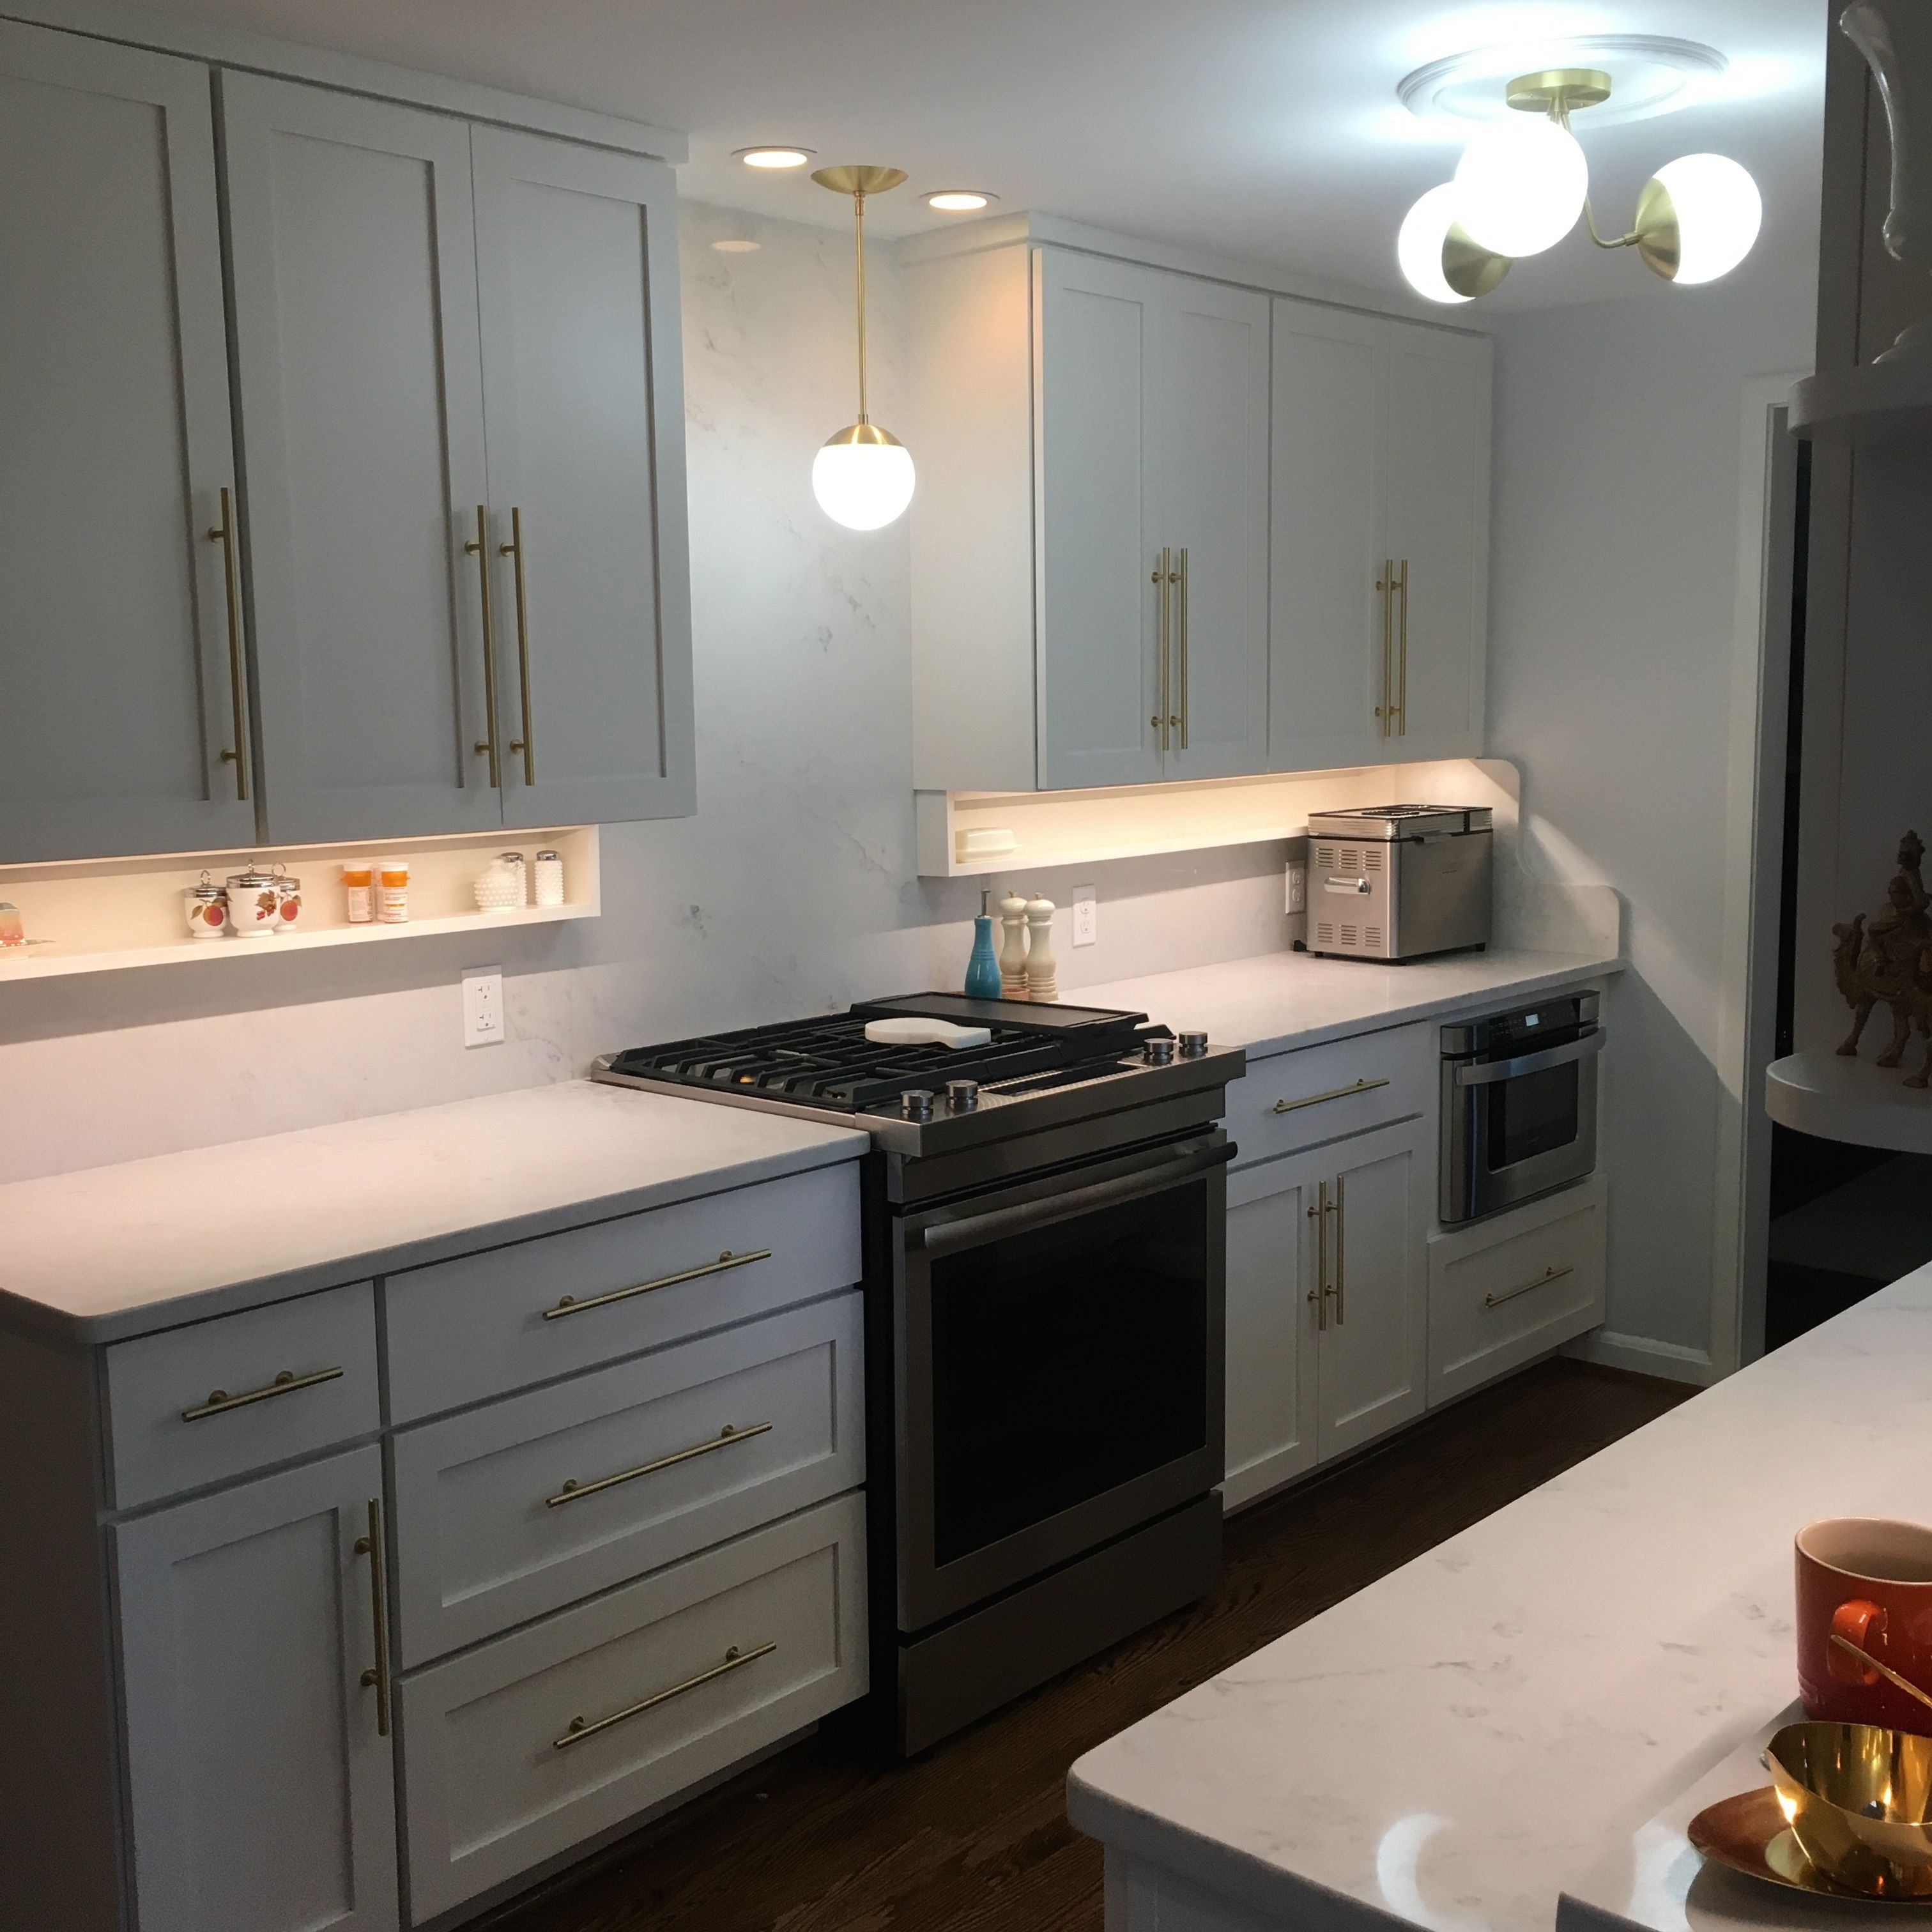 Mouser usa kitchens and baths manufacturer - Mouser Cabinets In Divinity Galley Kitchen London Fog Quartz Cedar And Moss Alto